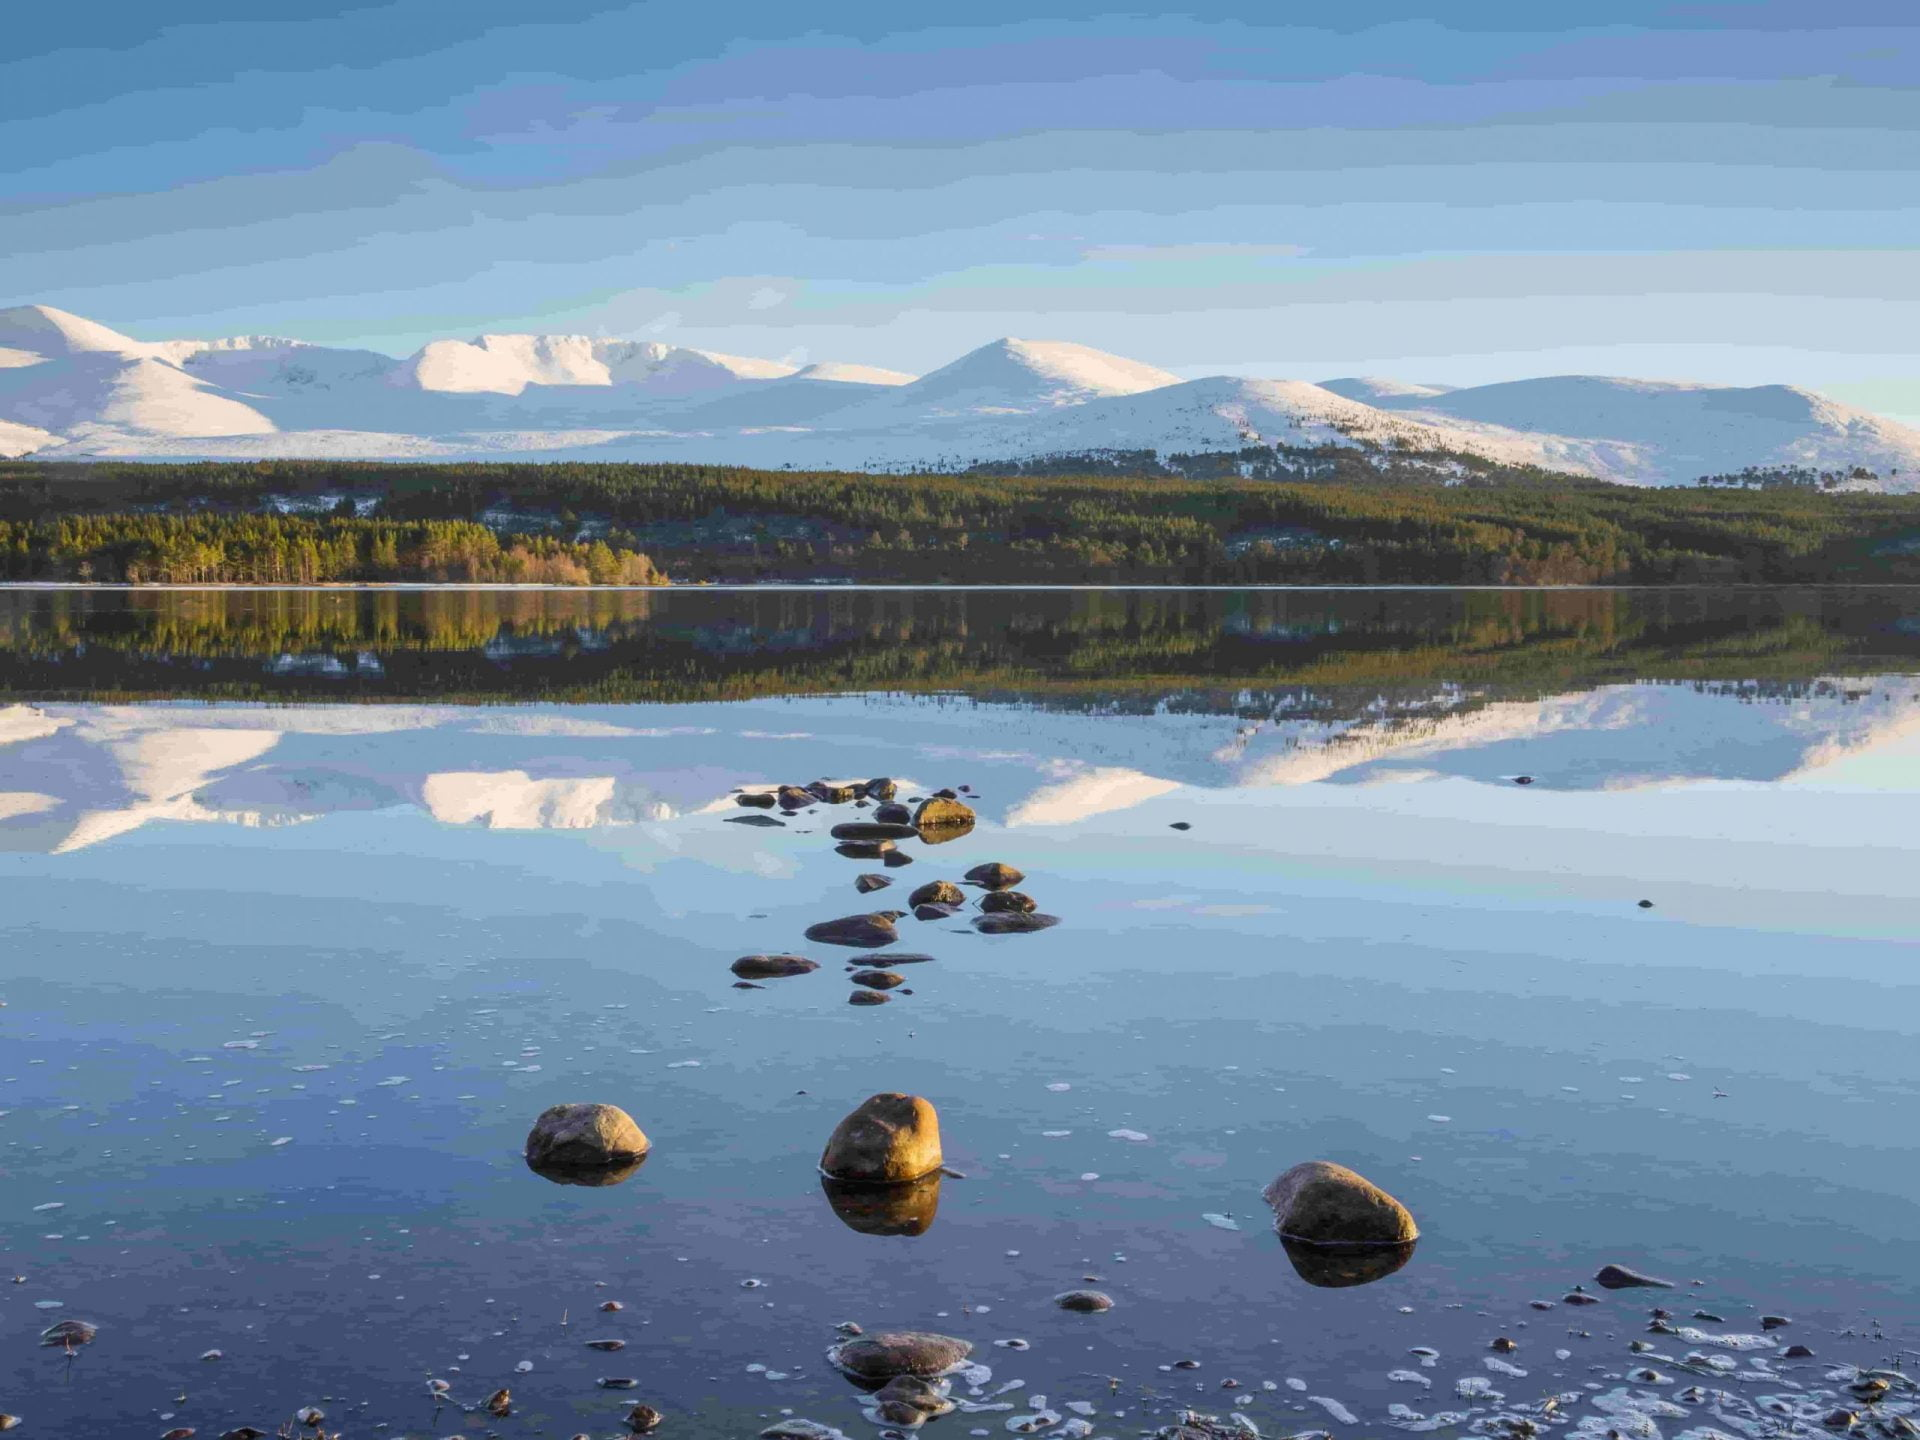 Loch Morlich in the Cairngorm National Park Highland Auto Campers